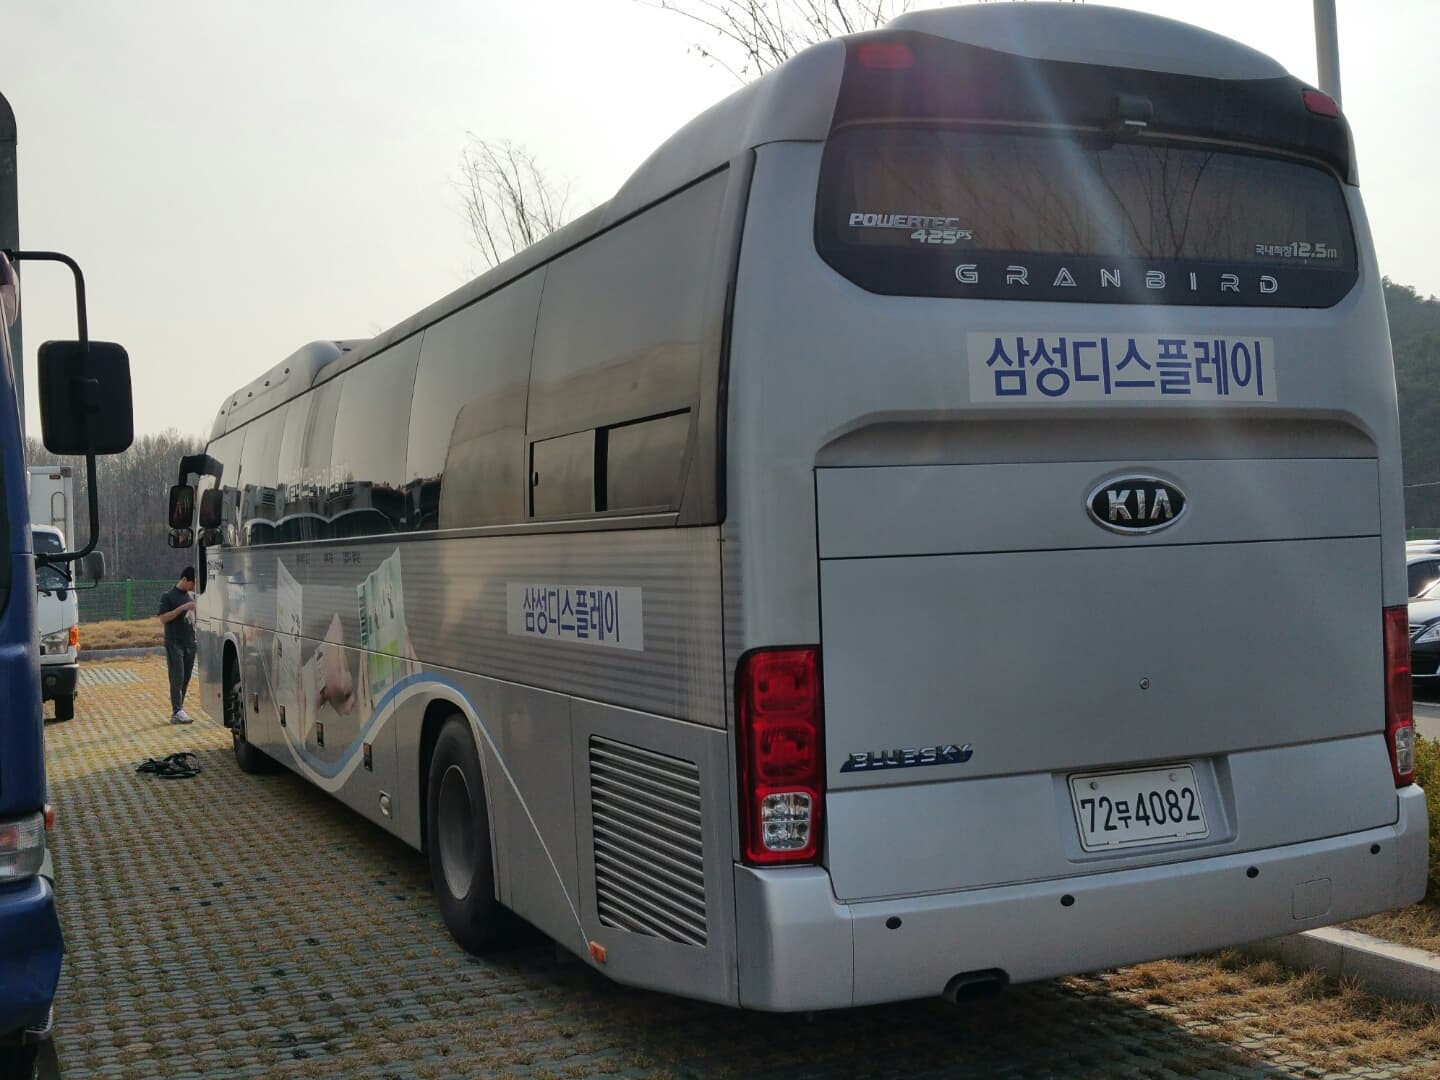 KIA NEW GRANBIRD BLUE SKY USED BUS